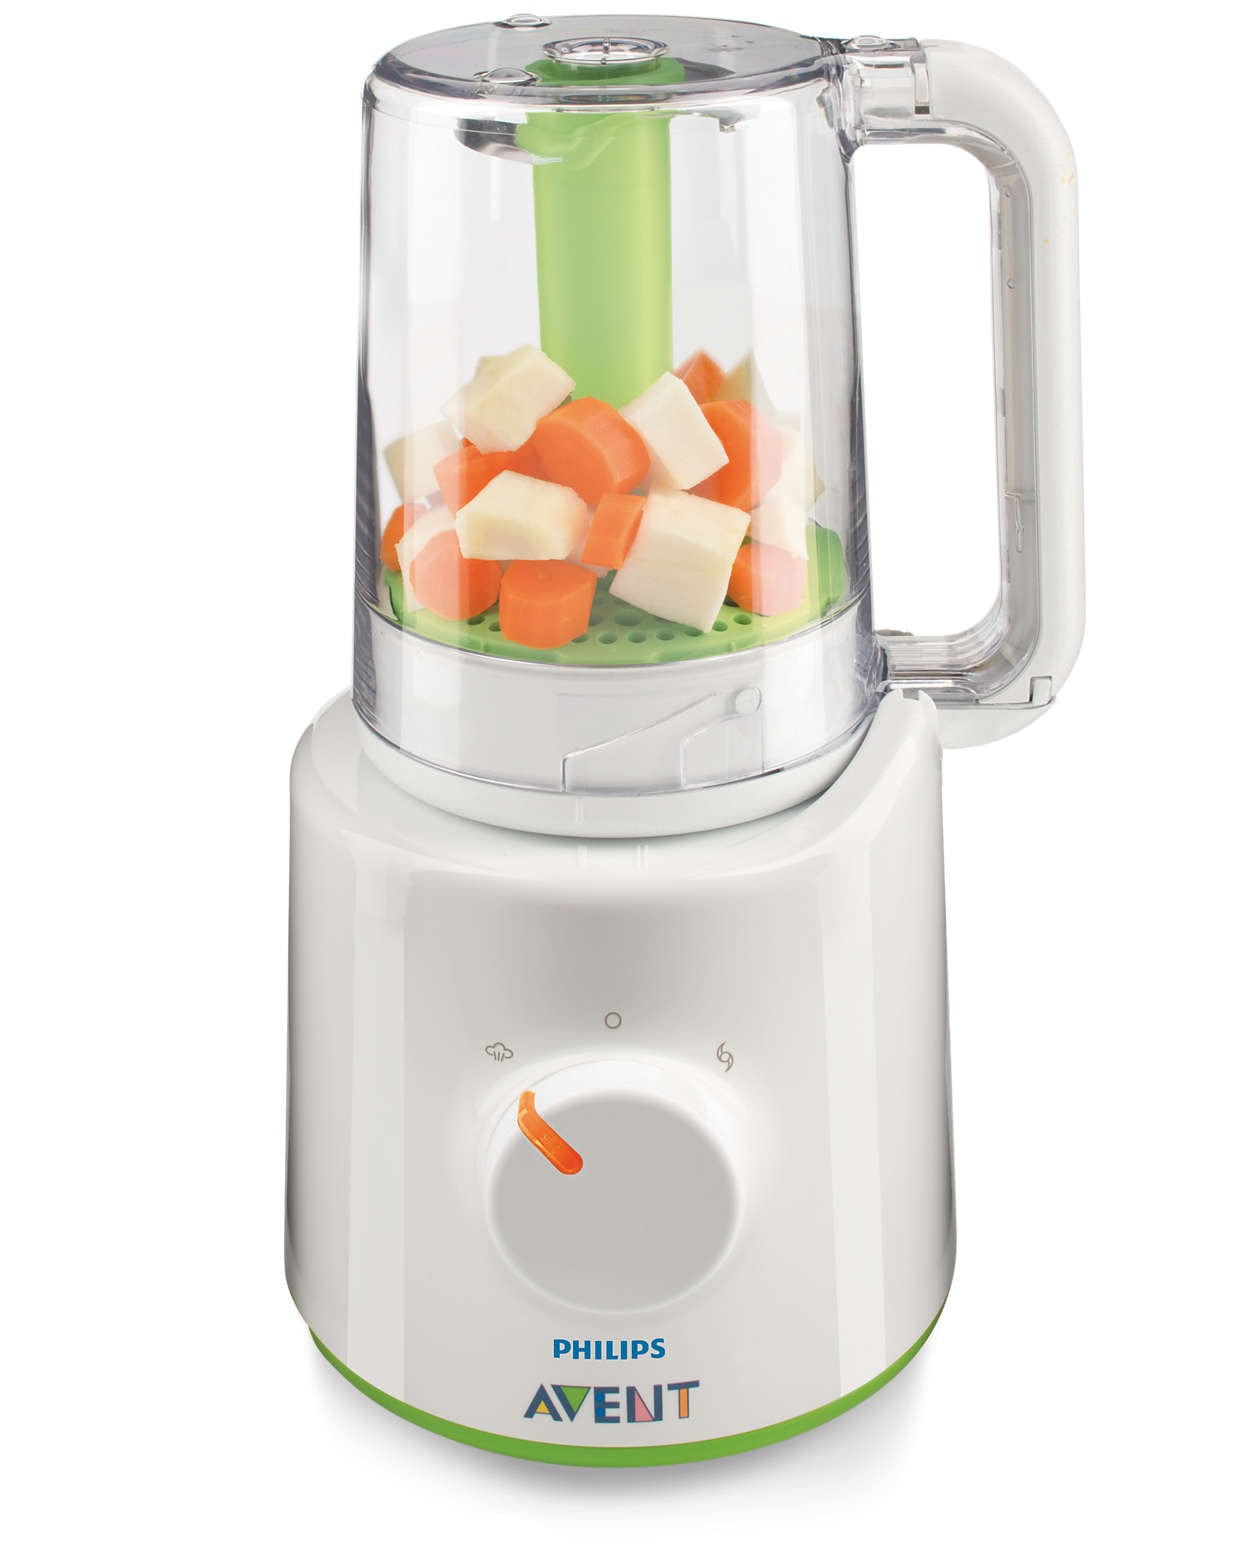 Cuocipappa Avent Easy Pappa 2 in 1